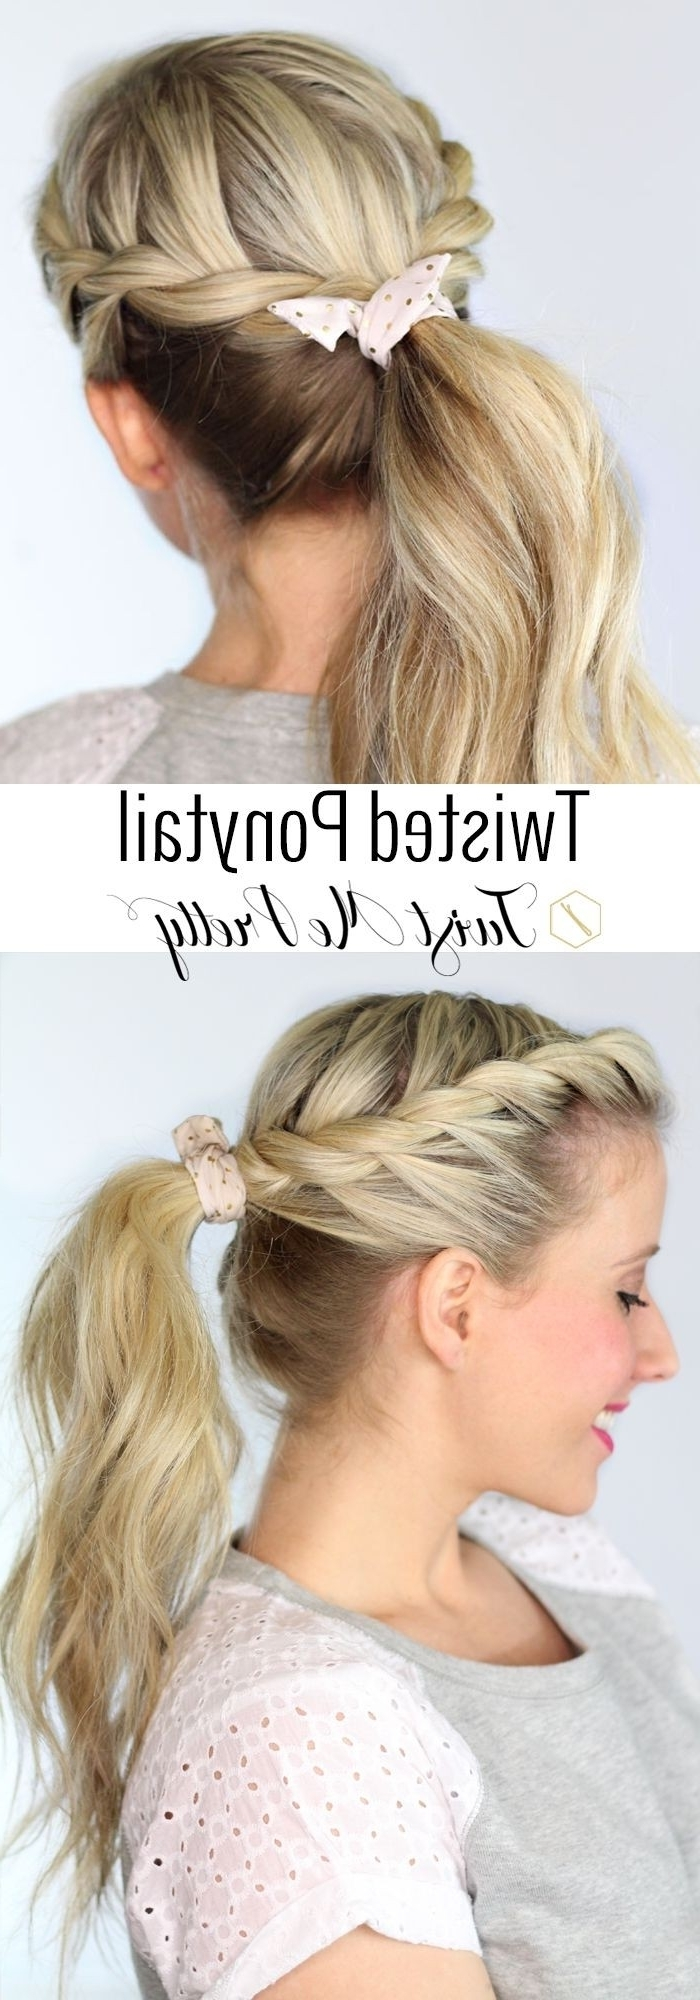 Well Known Braided Crown Pony Hairstyles Intended For Top 10 Fashionable Ponytail Hairstyles For Summer  (View 20 of 20)